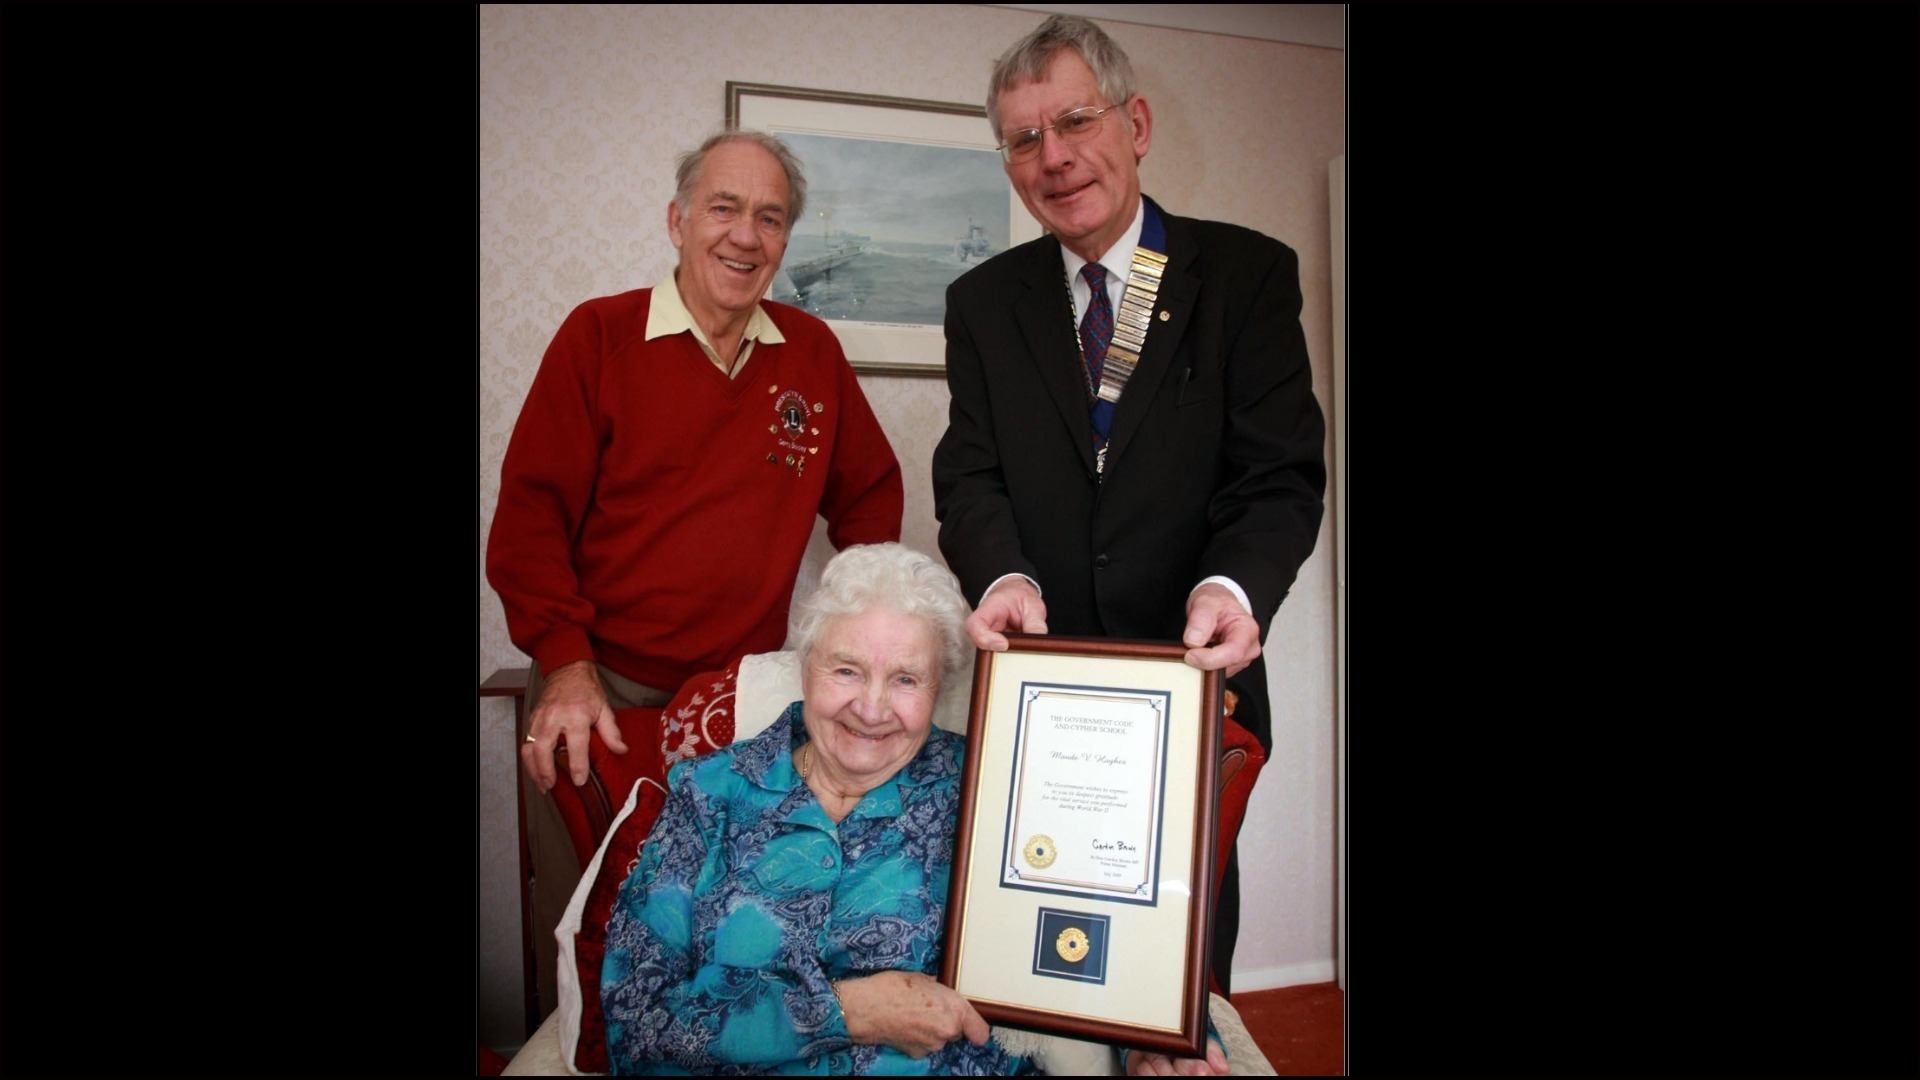 Gerry Beasley and Steve Savory of the Prestatyn and Rhyl Lions Club present Maude Hughes Lions with an award